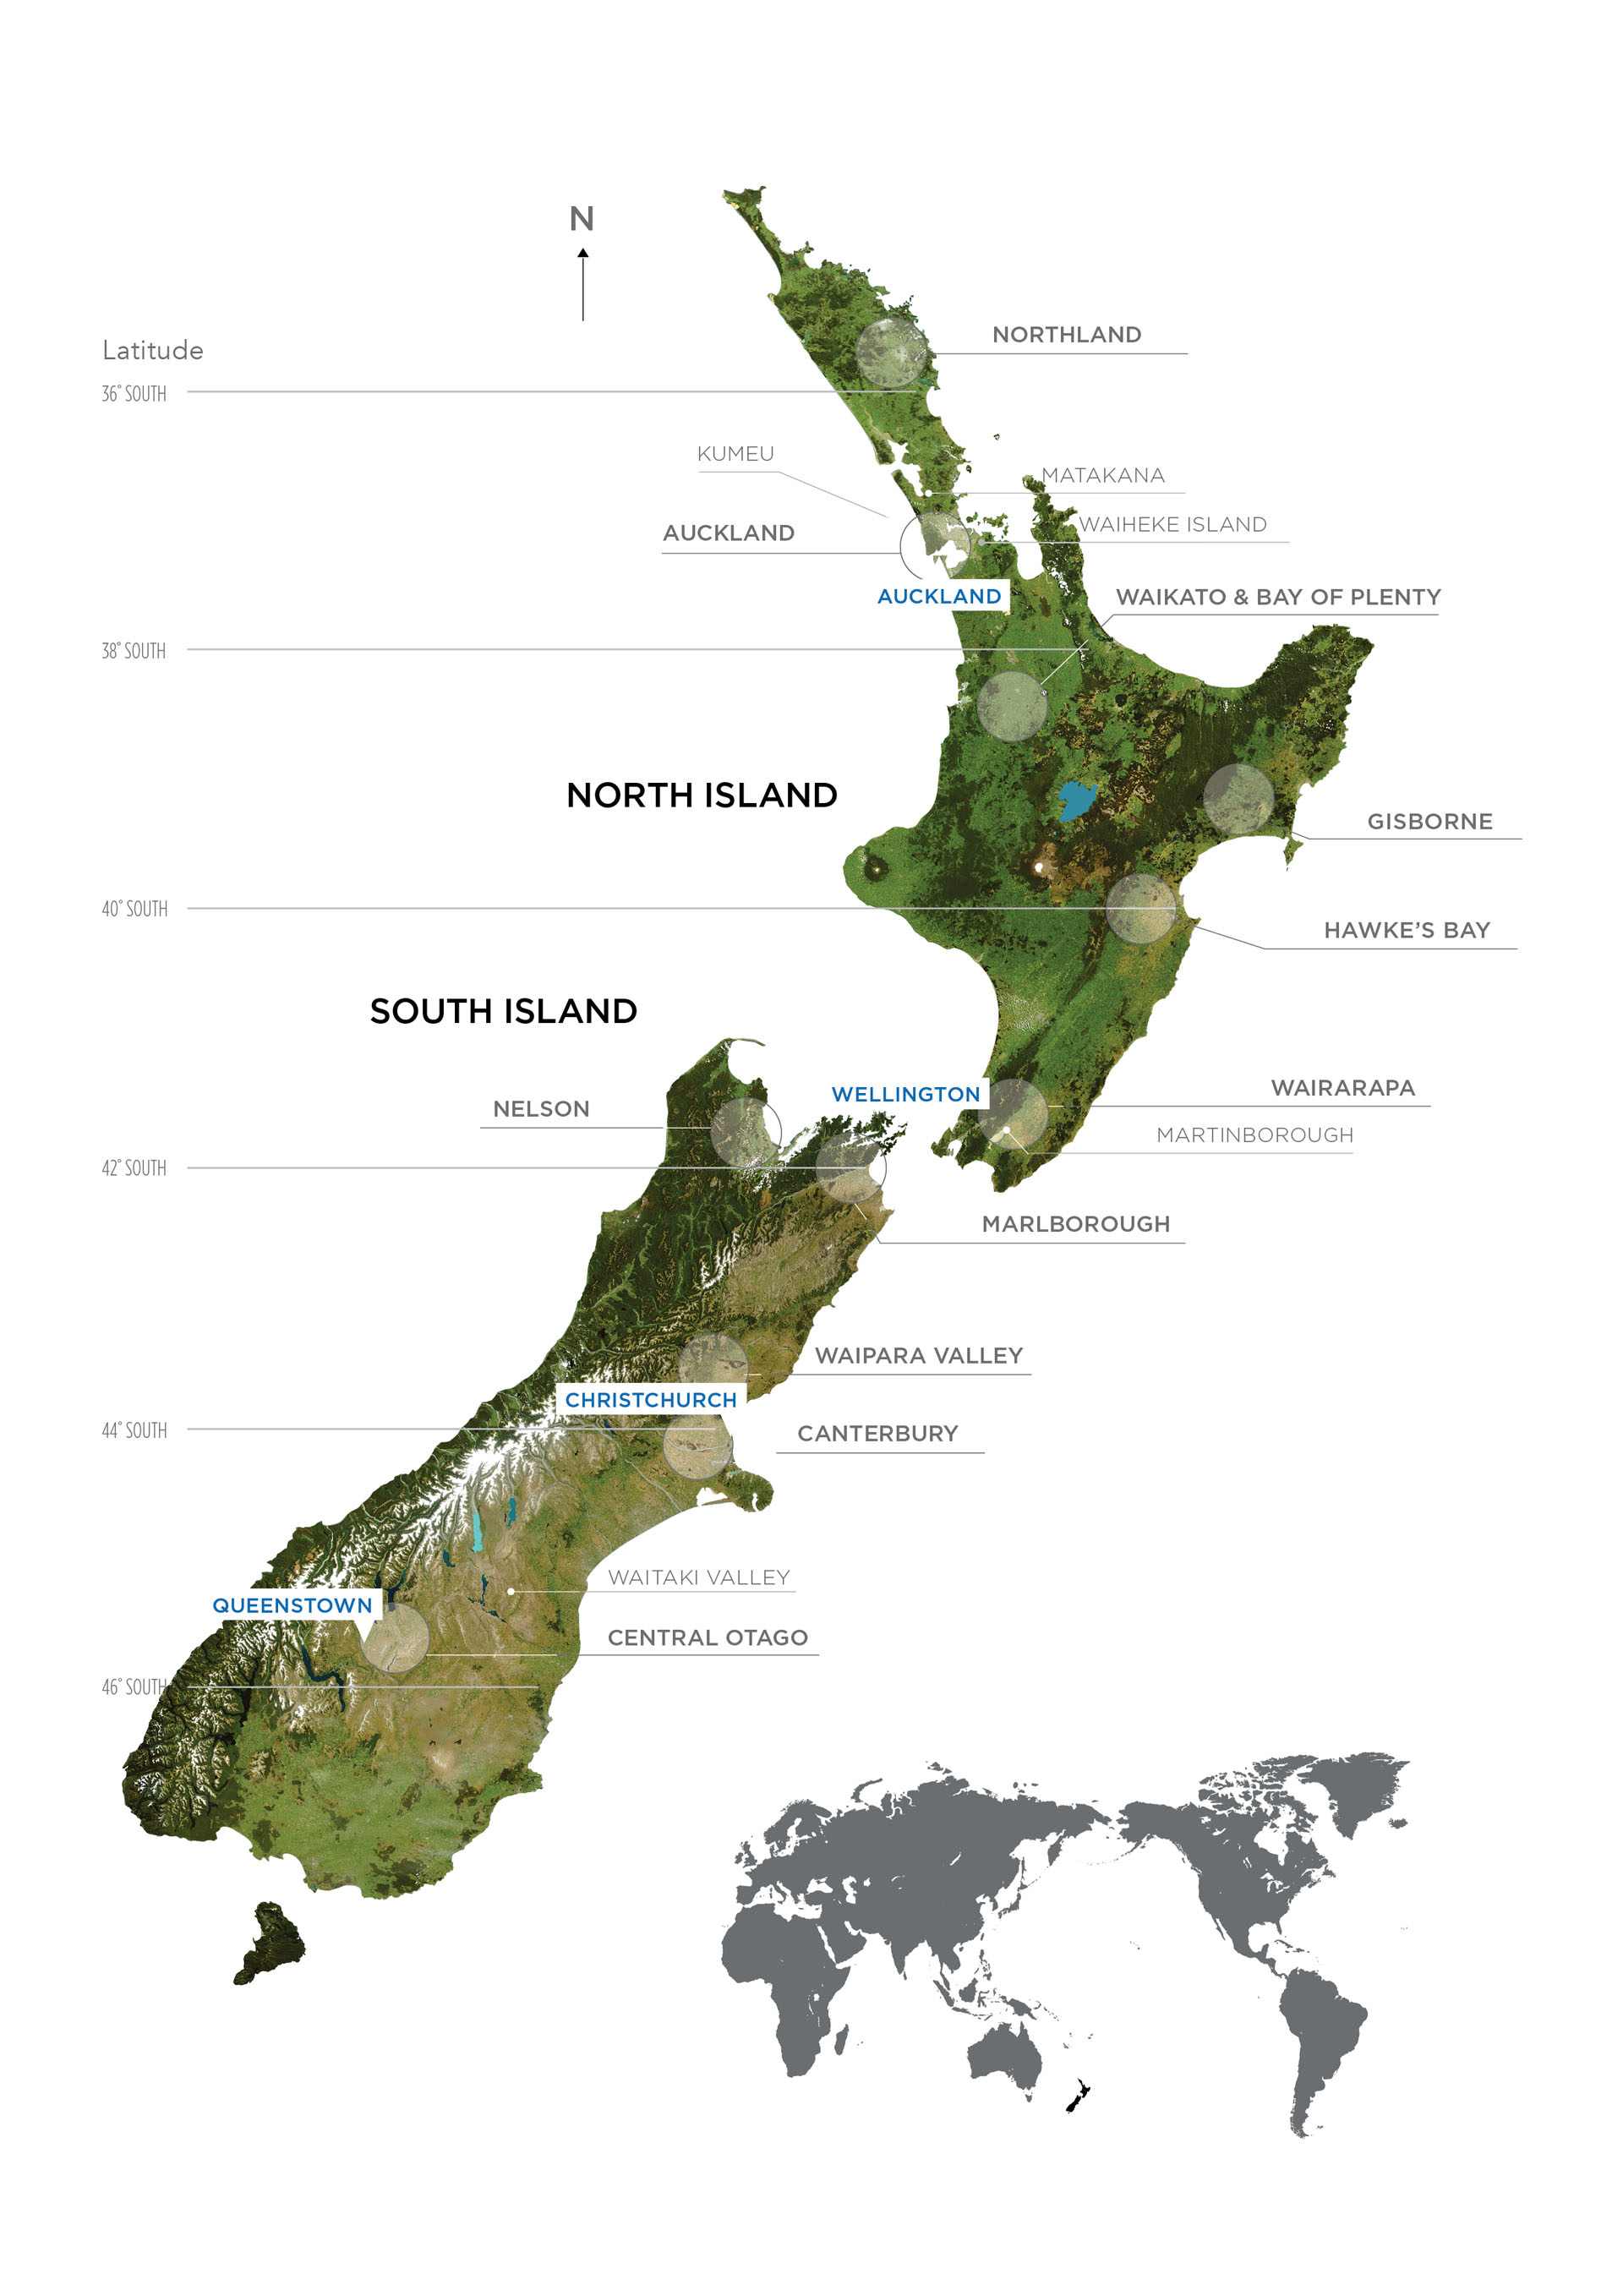 Although smaller than California, New Zealand now has 10 main wine regions, most of them near the coast except for Central Otago.